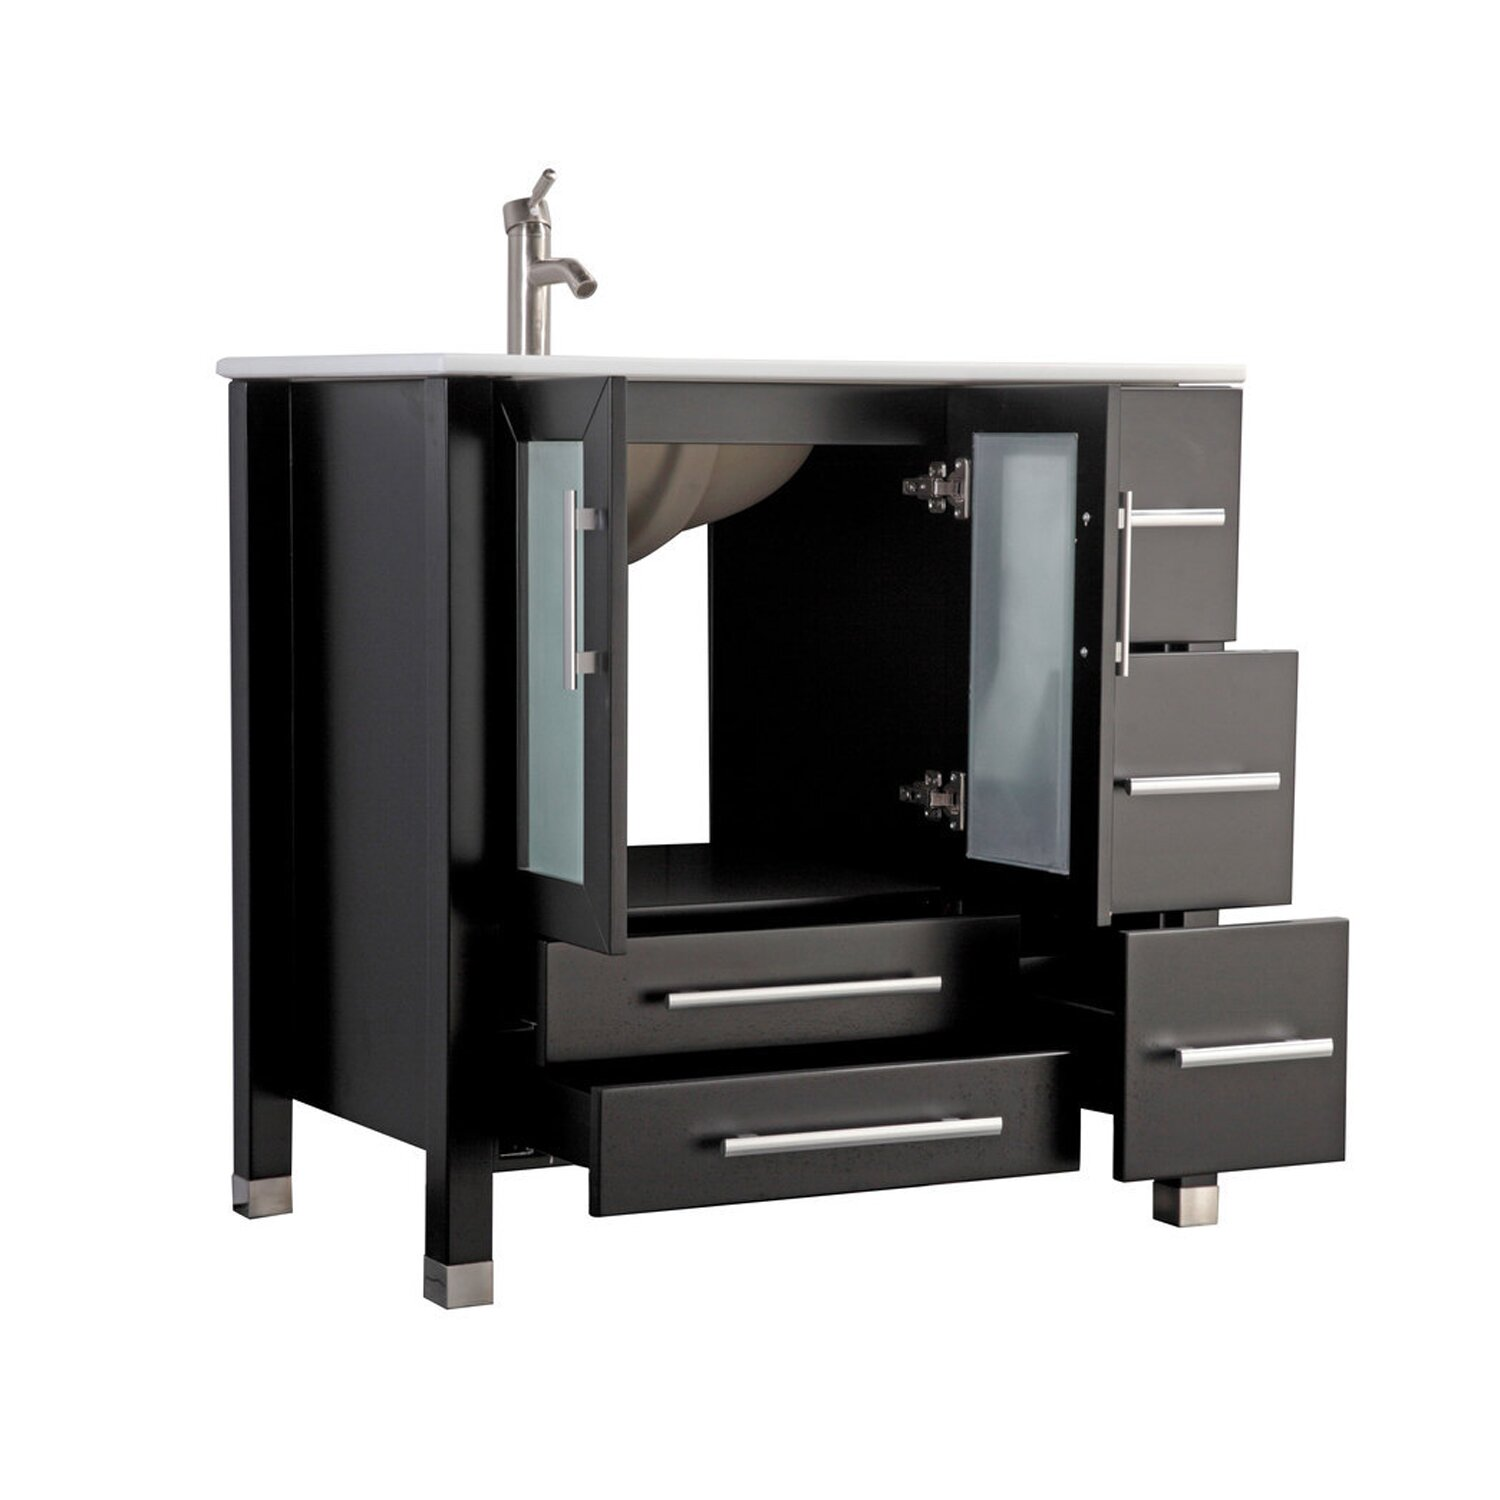 mtd vanities sweden 36 single sink bathroom vanity set with mirror